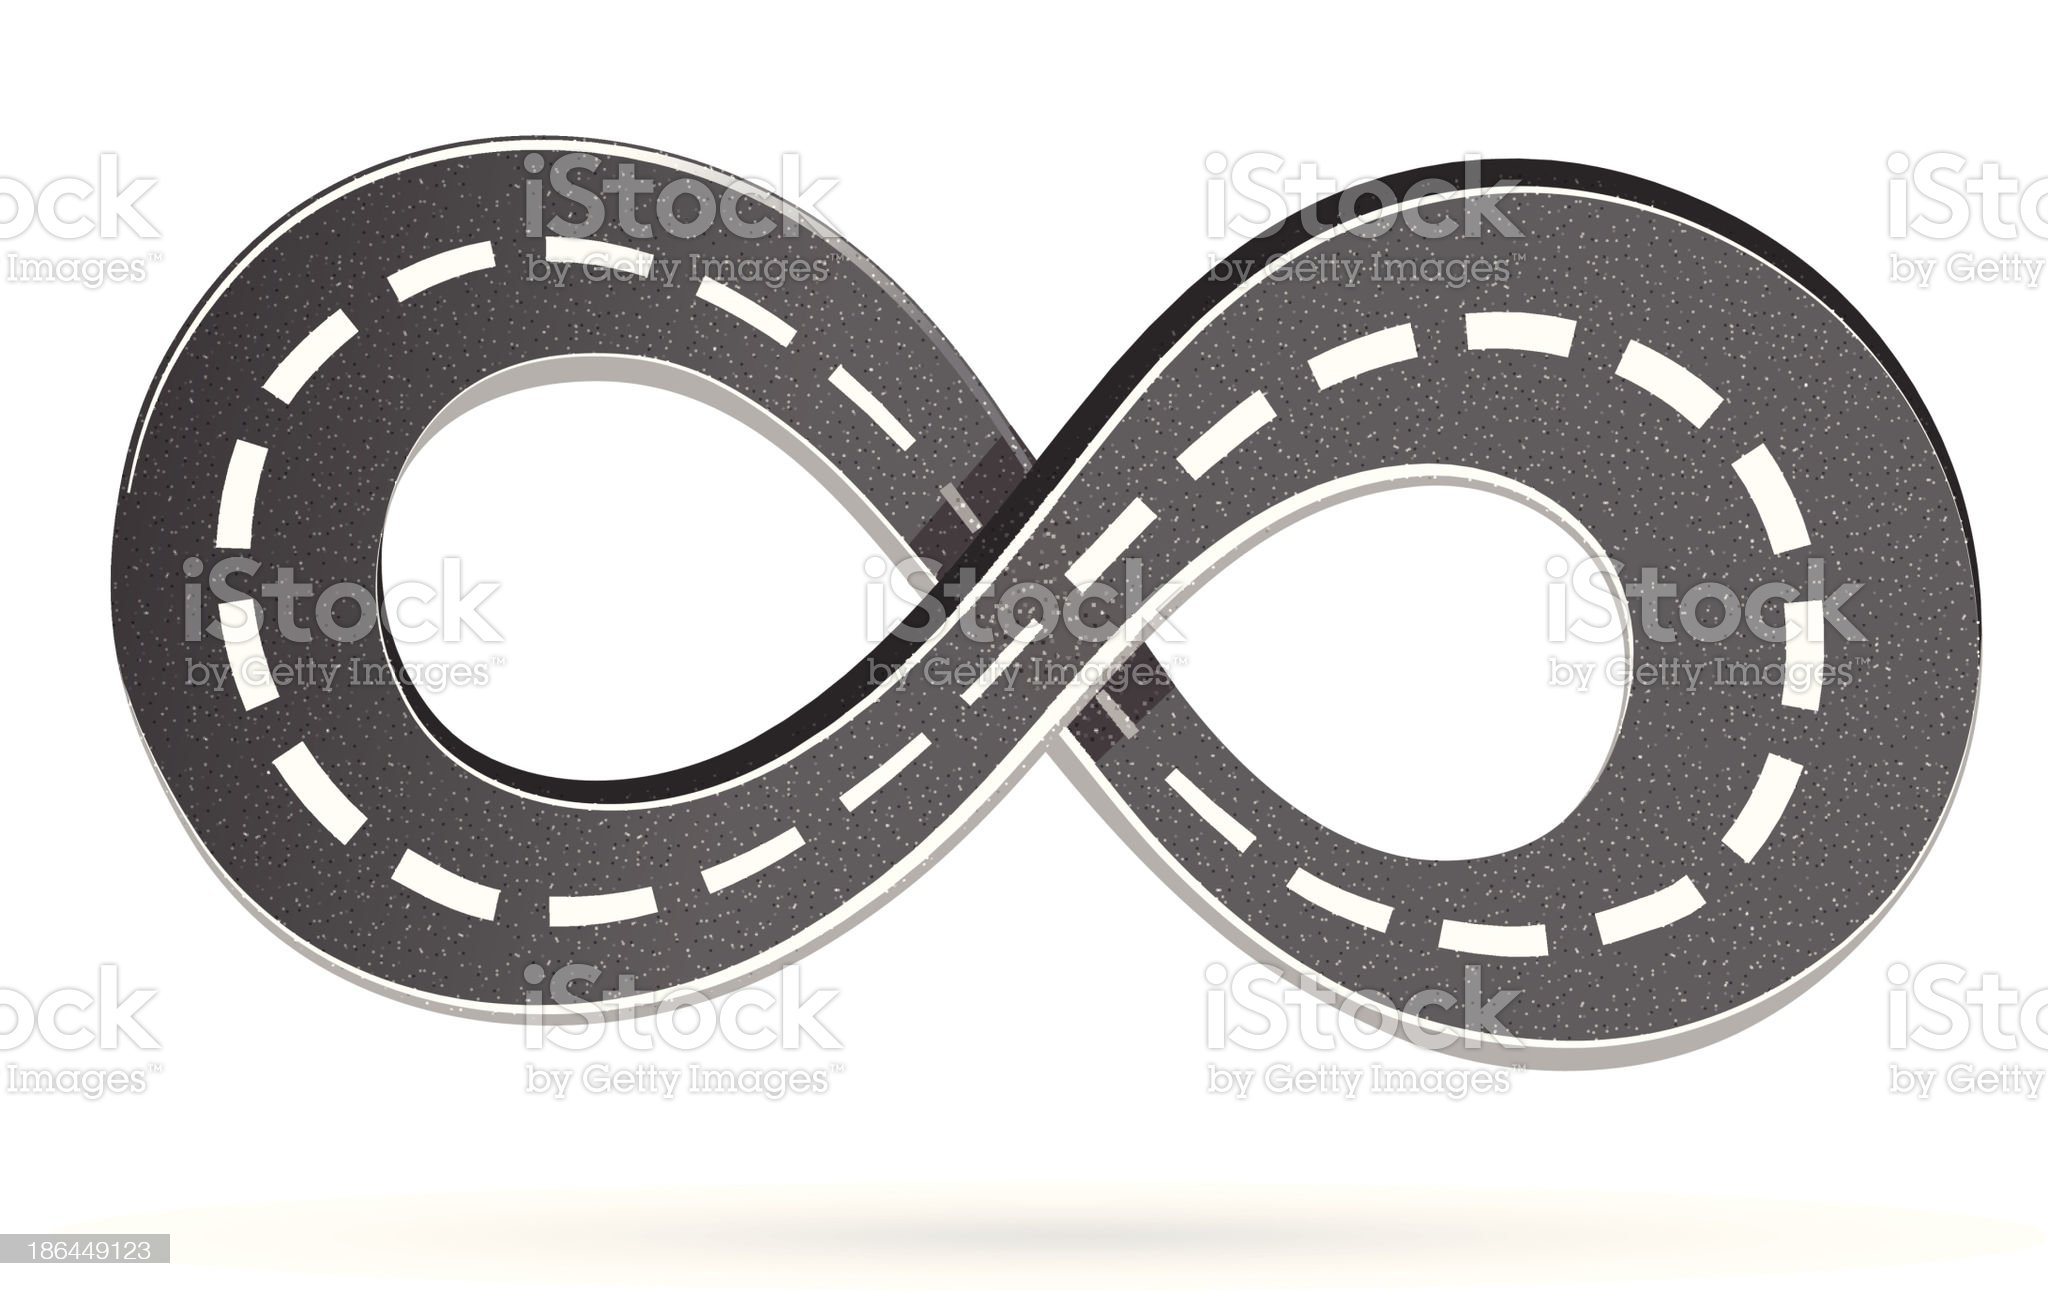 Road in the shape of an infinity sign royalty-free stock vector art